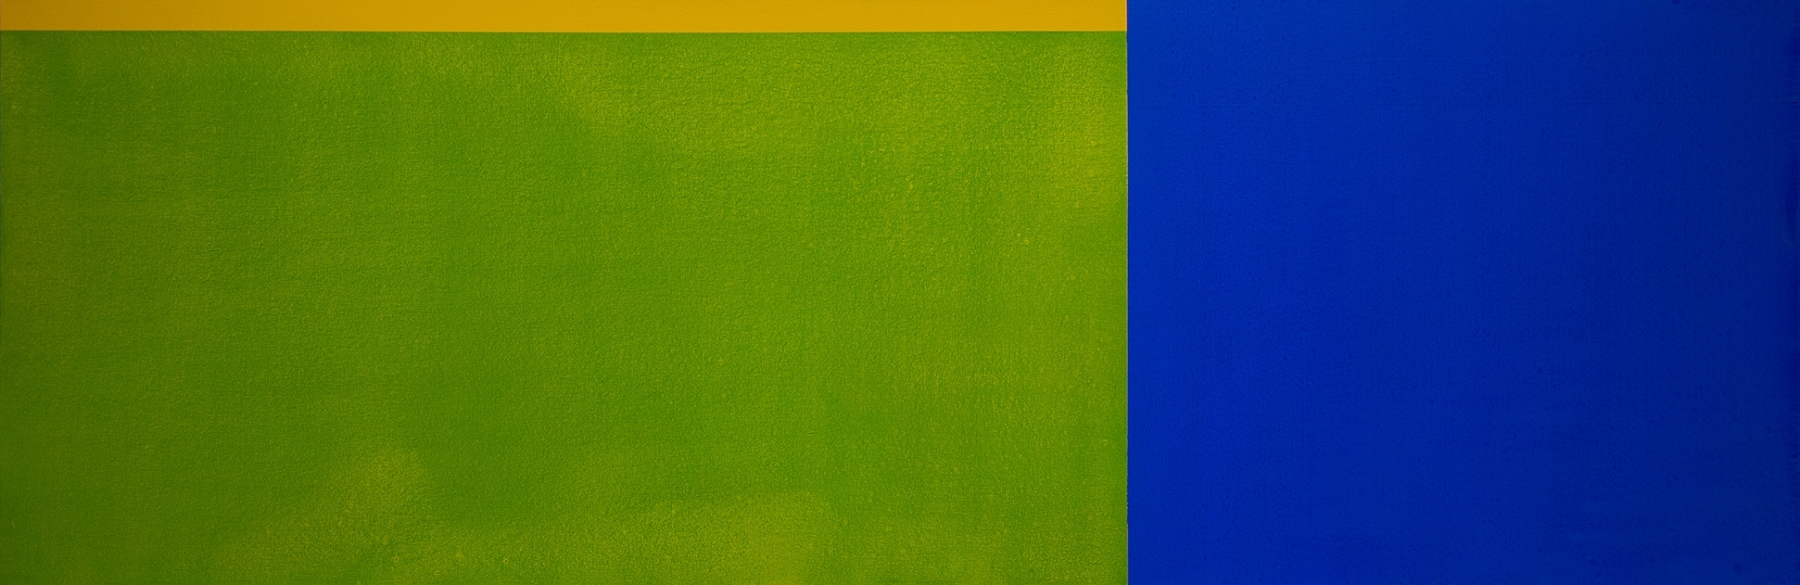 """PAINTING 14-VI-17 2017 Acrylic on canvas, 27 x 81""""  Private Collection"""